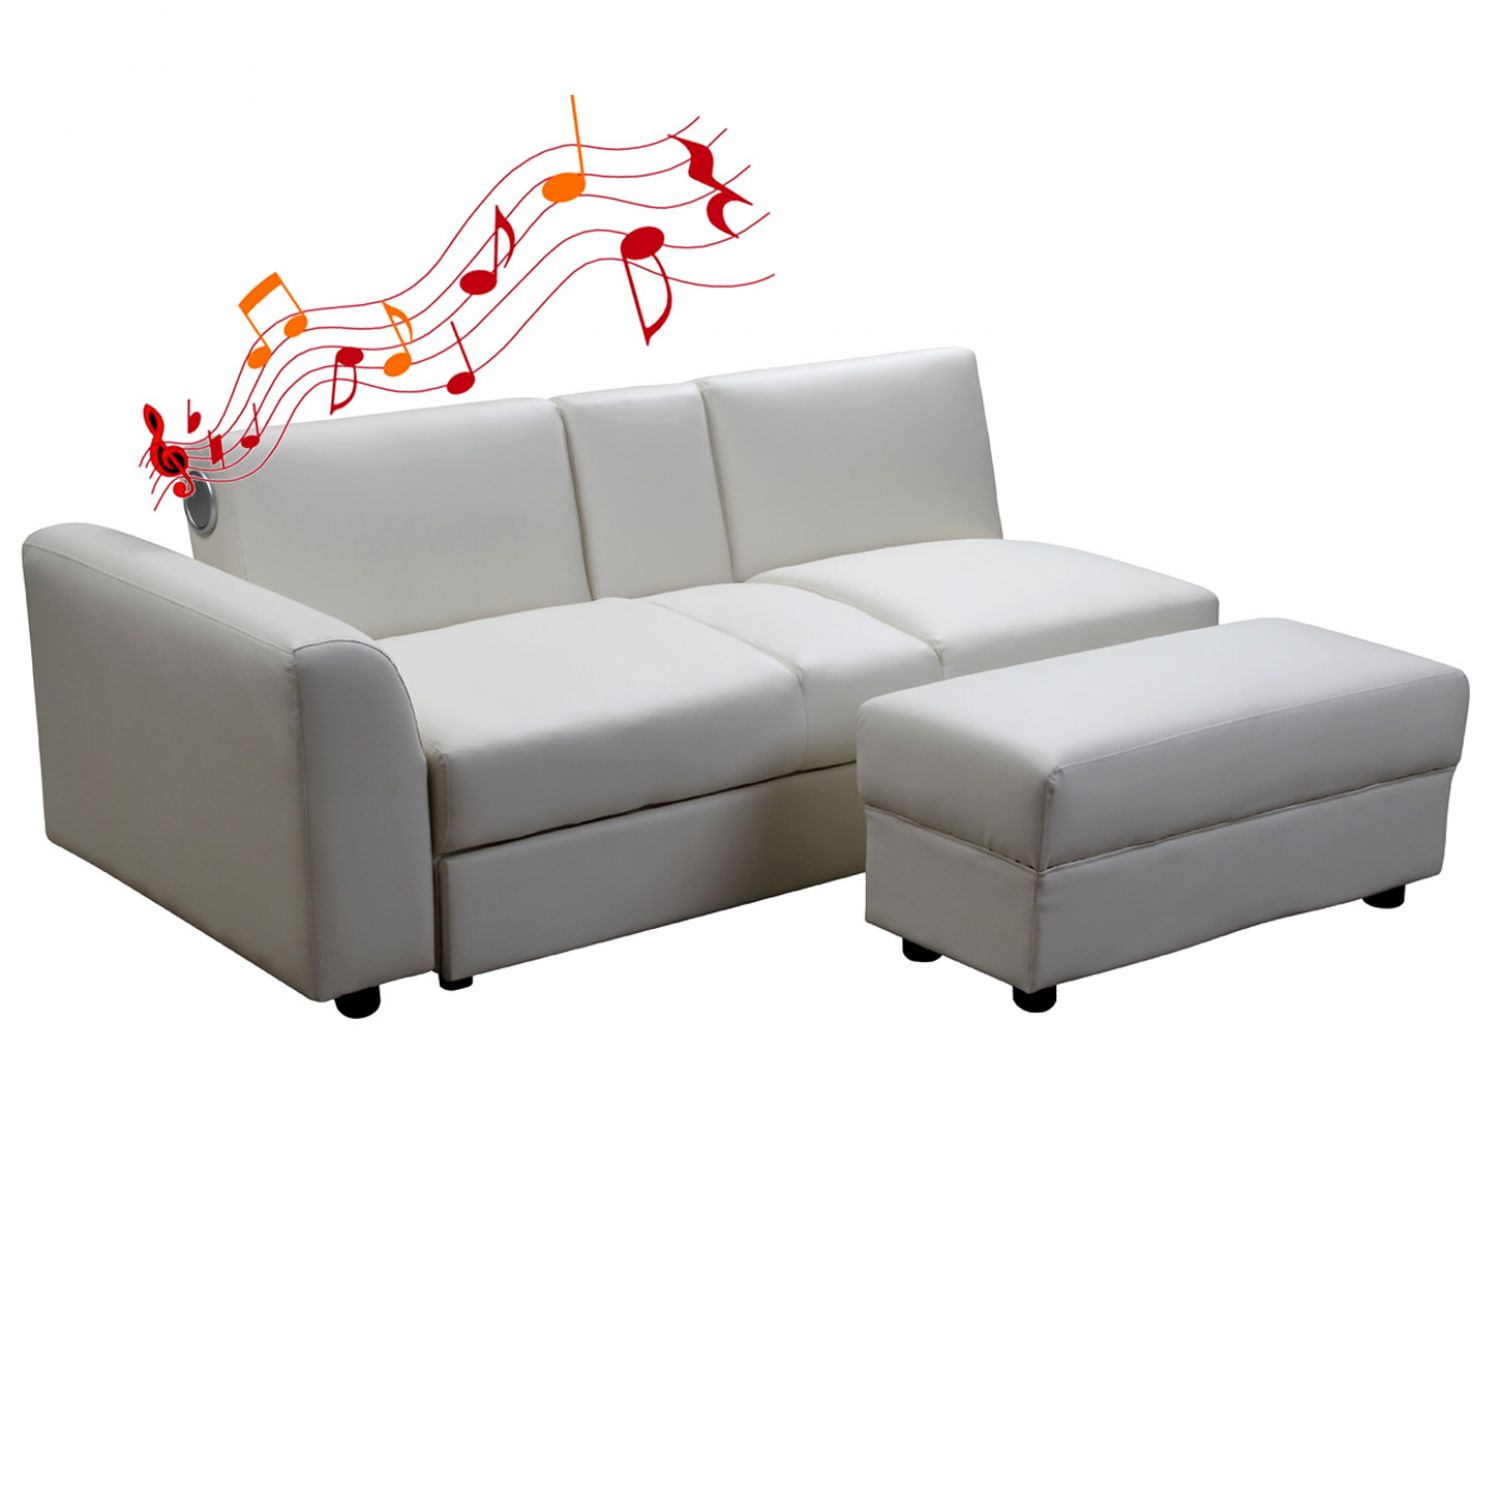 kin funktionssofa mit bluetooth und 2 schubladen in weiss schlafsofa neu ebay. Black Bedroom Furniture Sets. Home Design Ideas